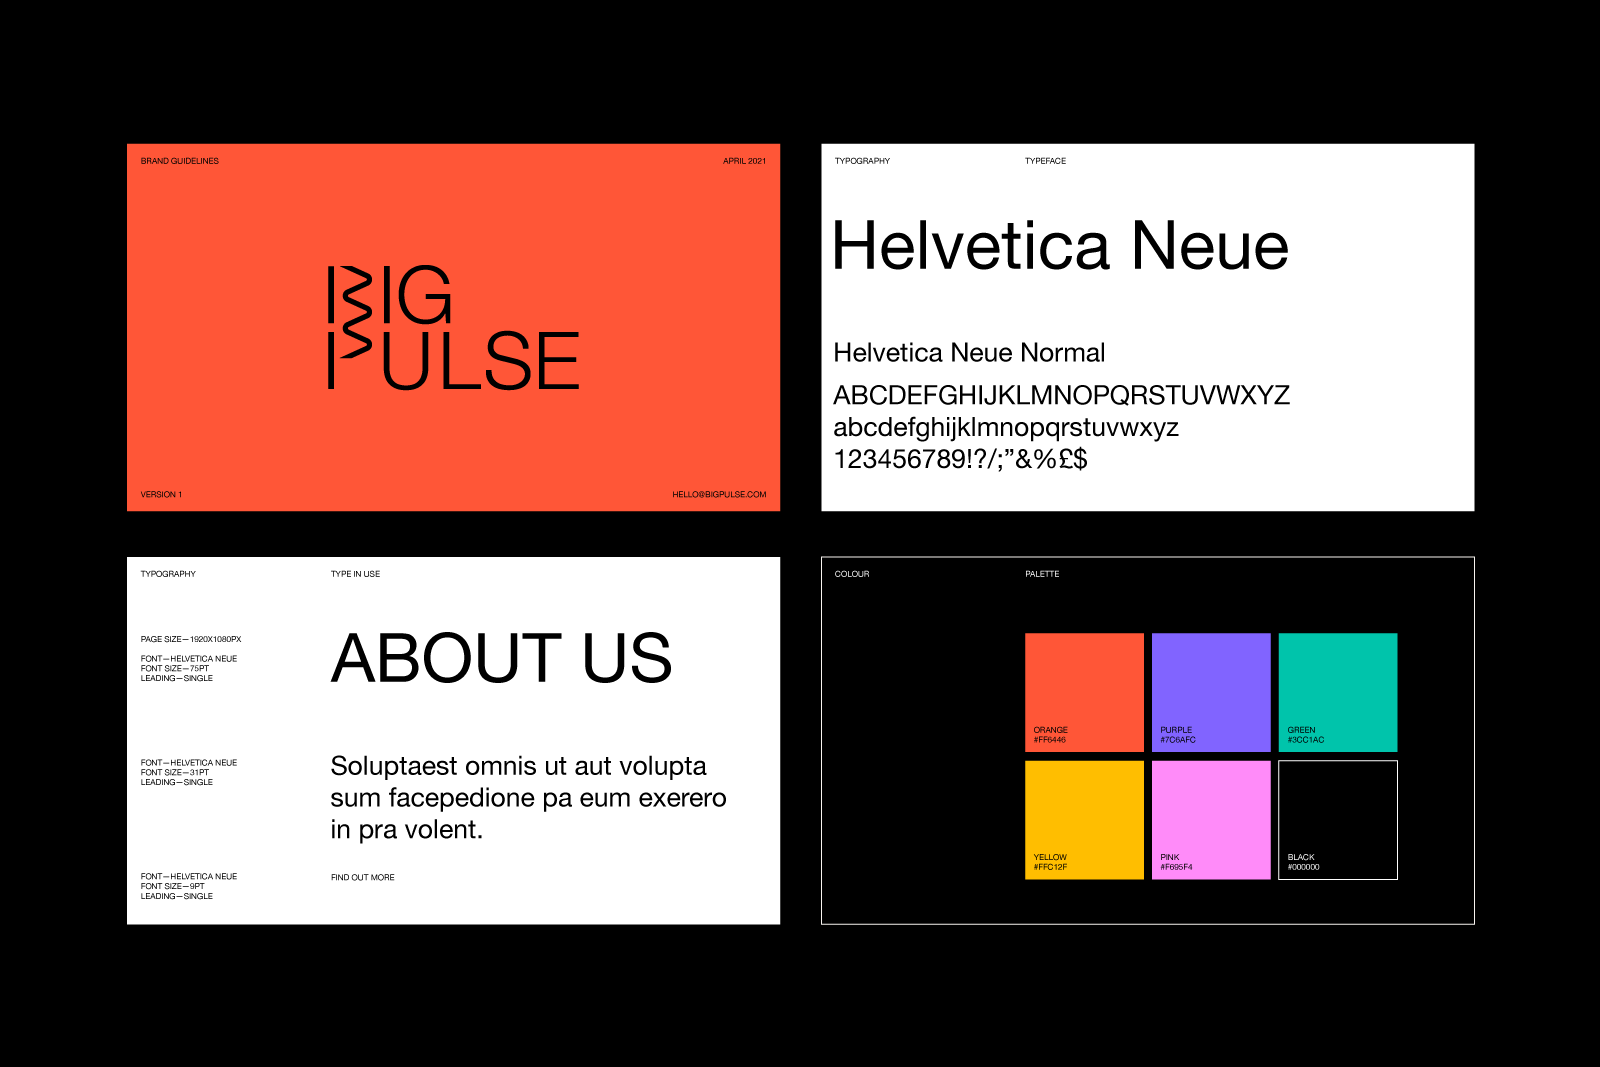 Details of colour and typeface used for Big Pulse rebrand